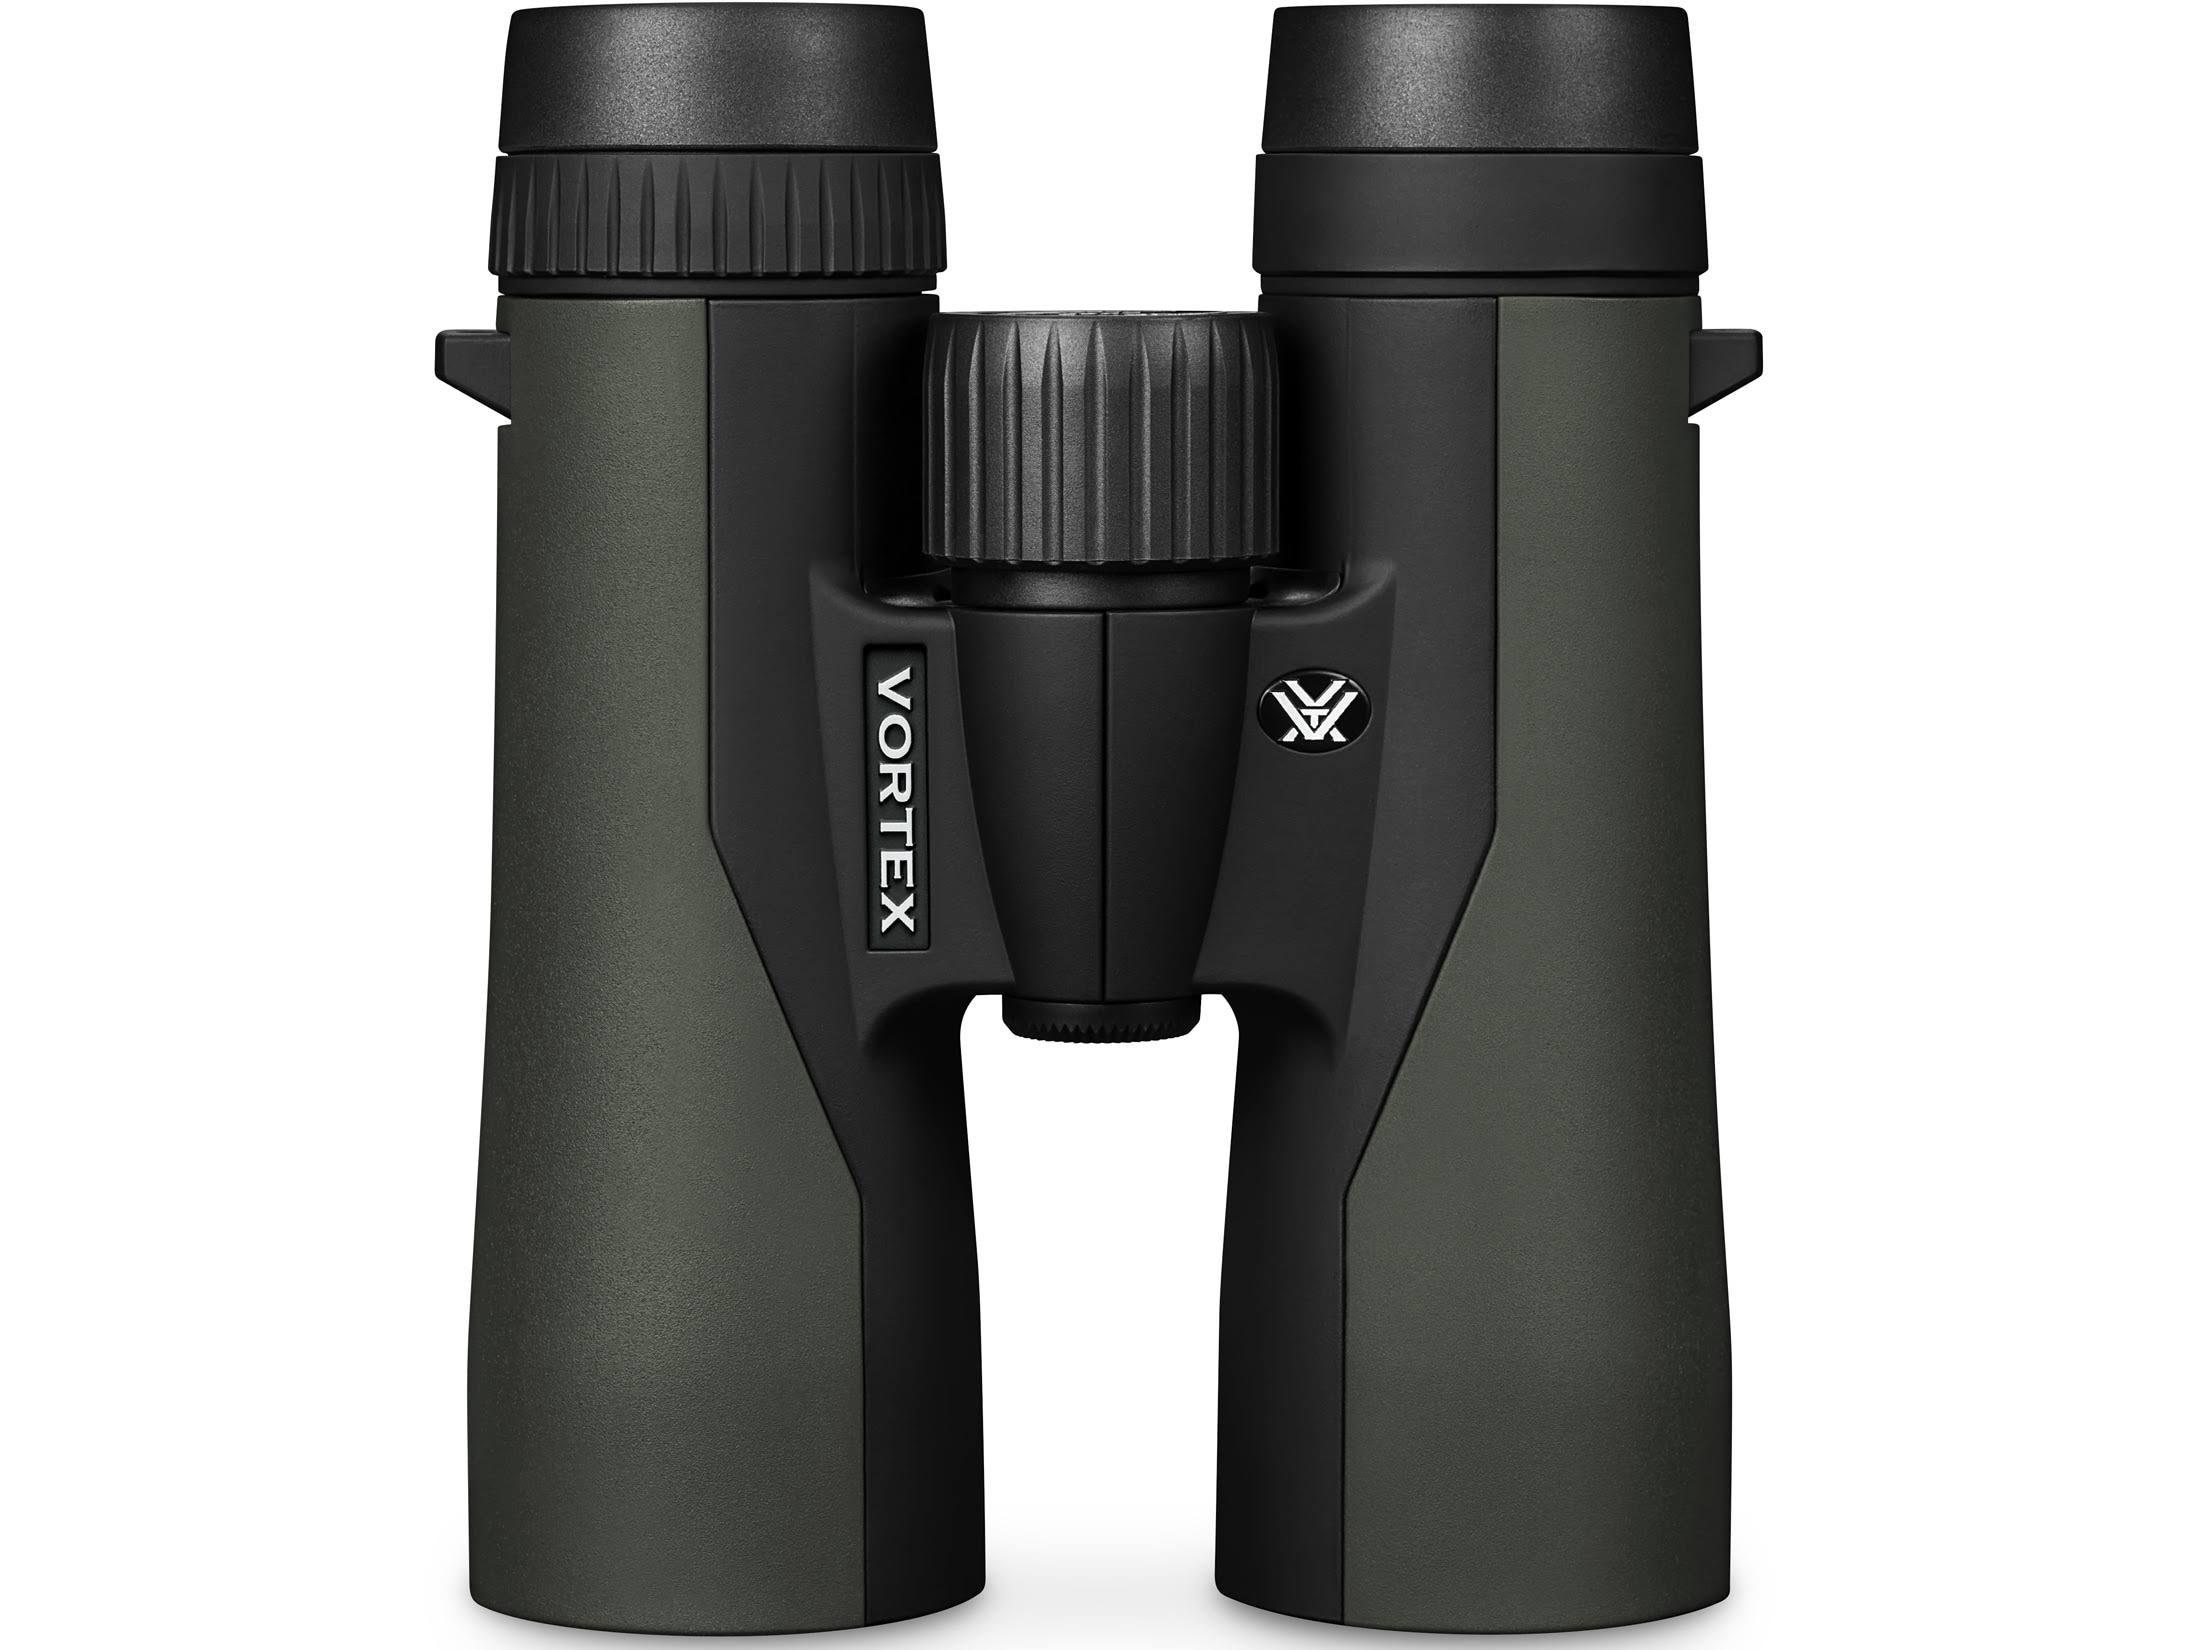 "Vortex Optics Crossfire HD Binocular - Green, 6.3"", Waterproof"